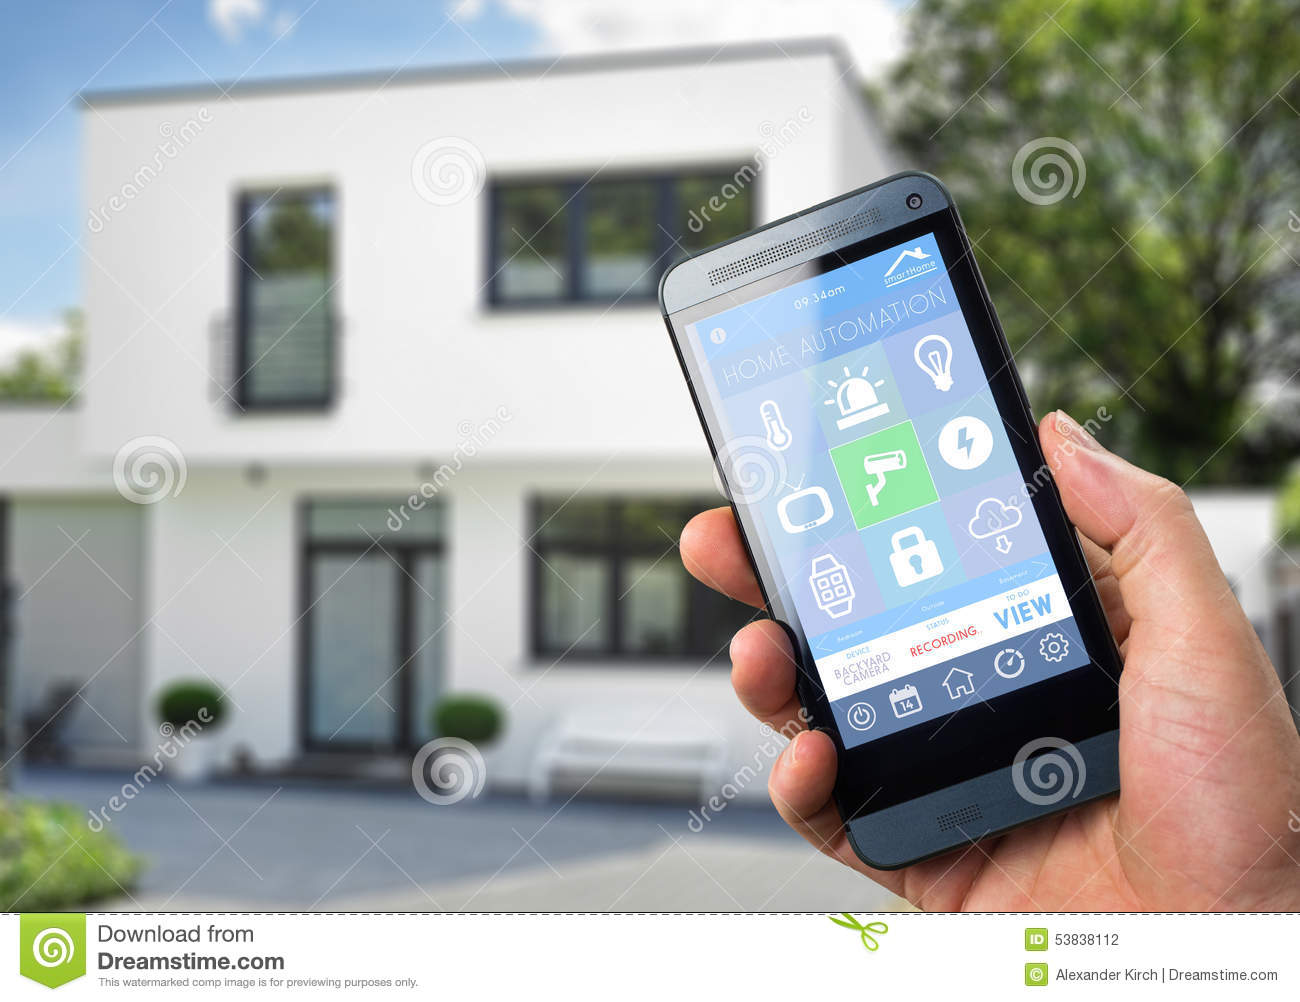 Smartphone Home Automation smart home device - home control stock illustration - image: 53838112